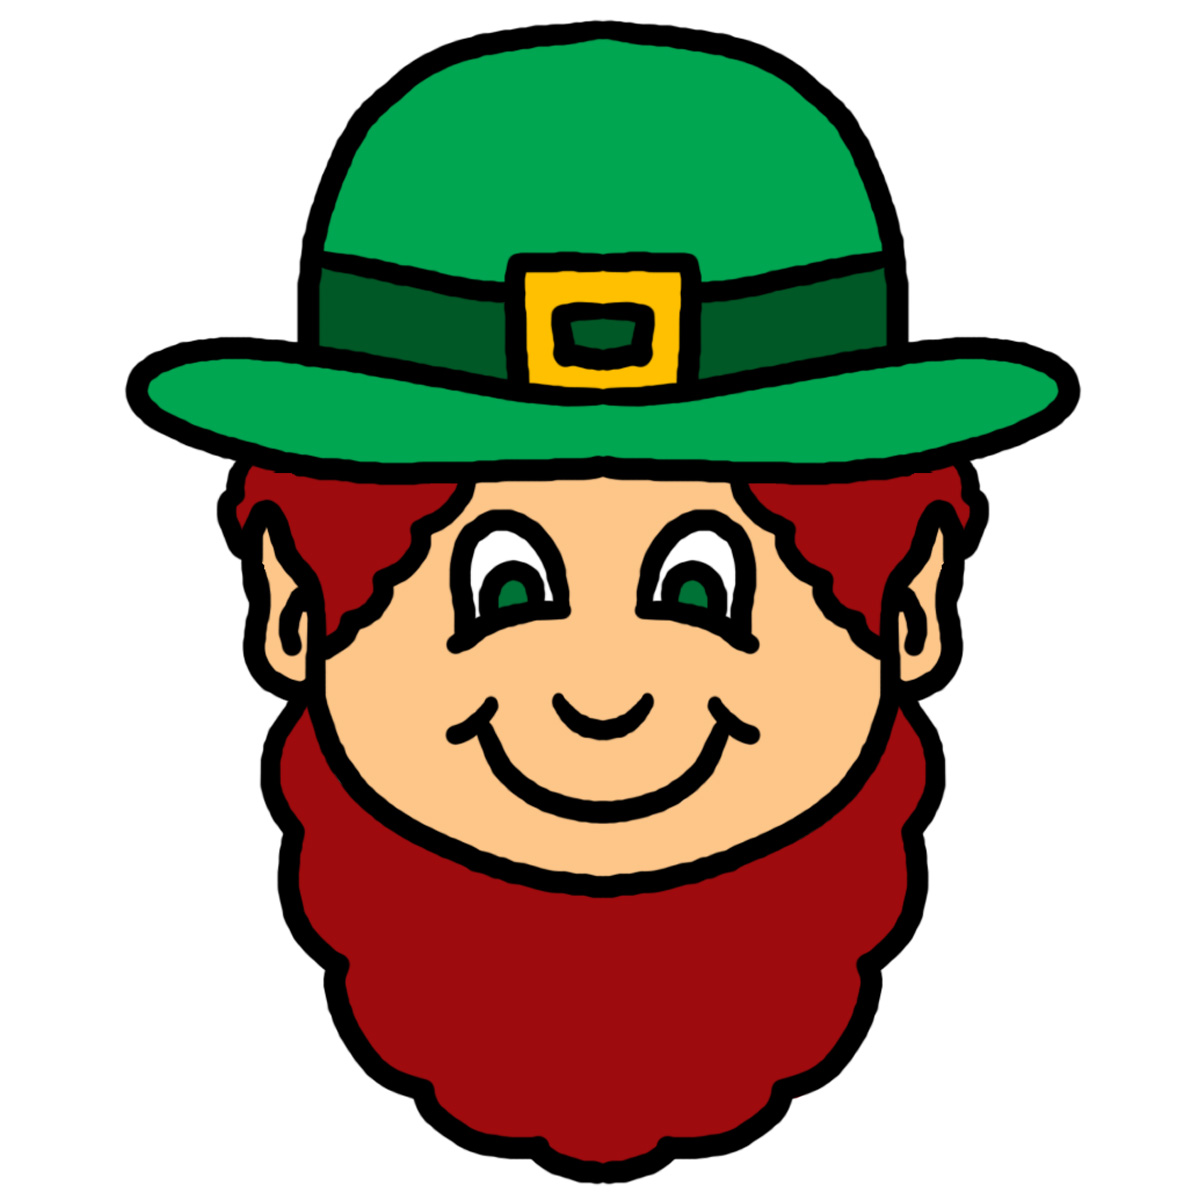 Catching a leprechaun clipart black and white picture transparent library Free Leprechaun, Download Free Clip Art, Free Clip Art on Clipart ... picture transparent library